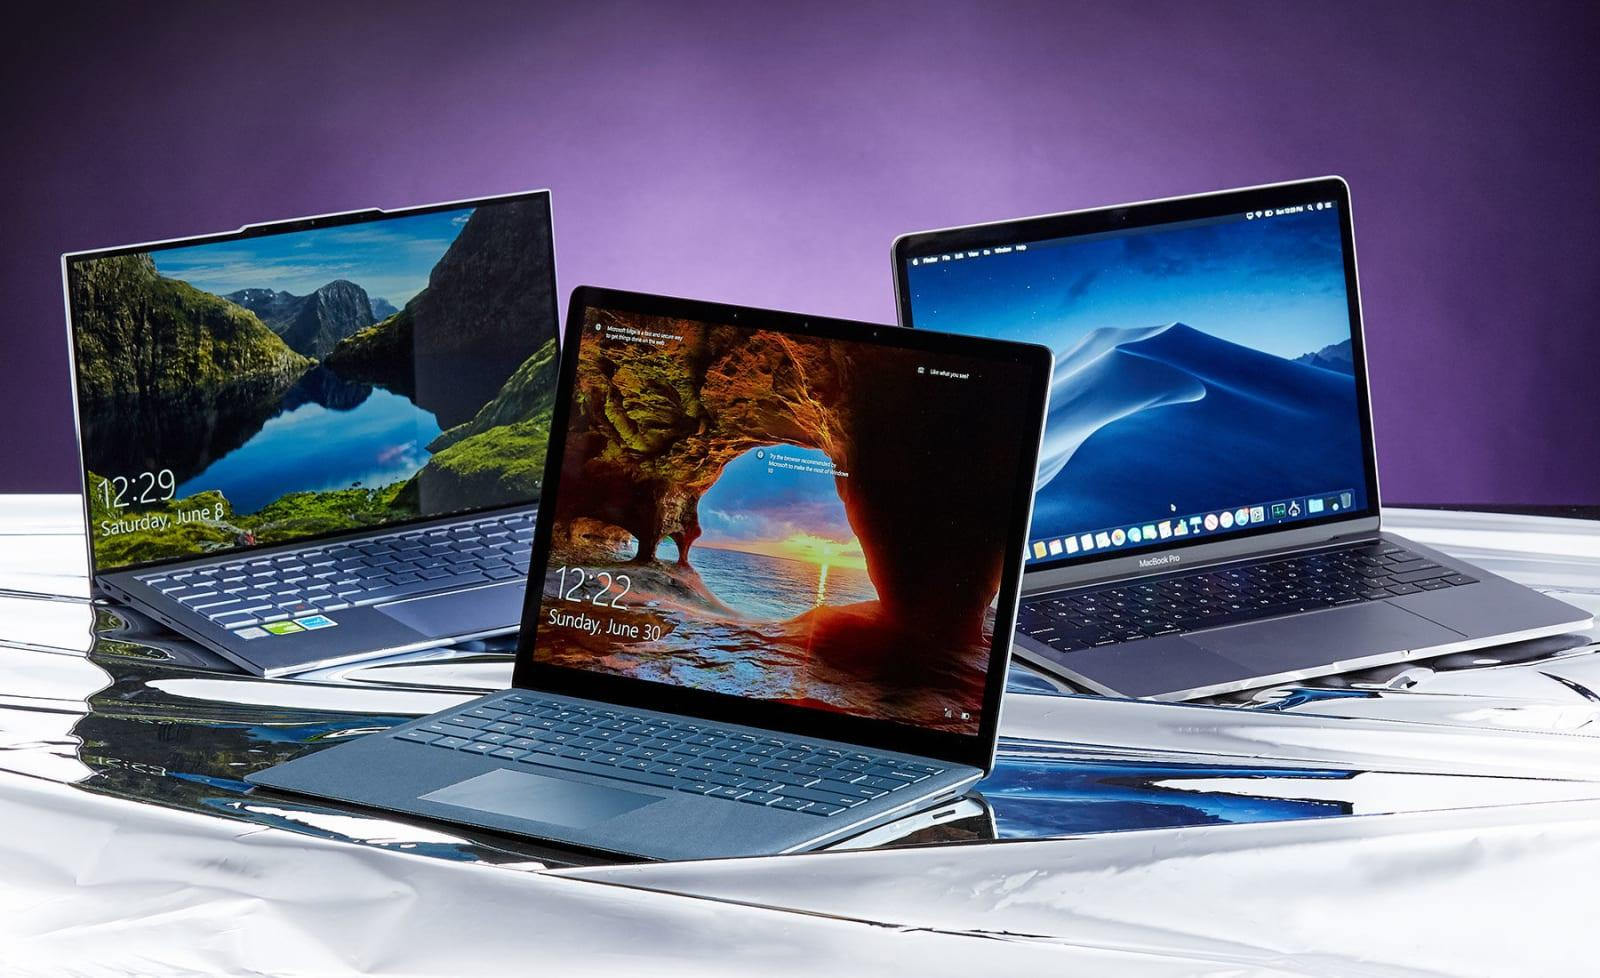 The Best Laptops For Students In 2019 Engadget,Living Room Wallpaper Designs For Home